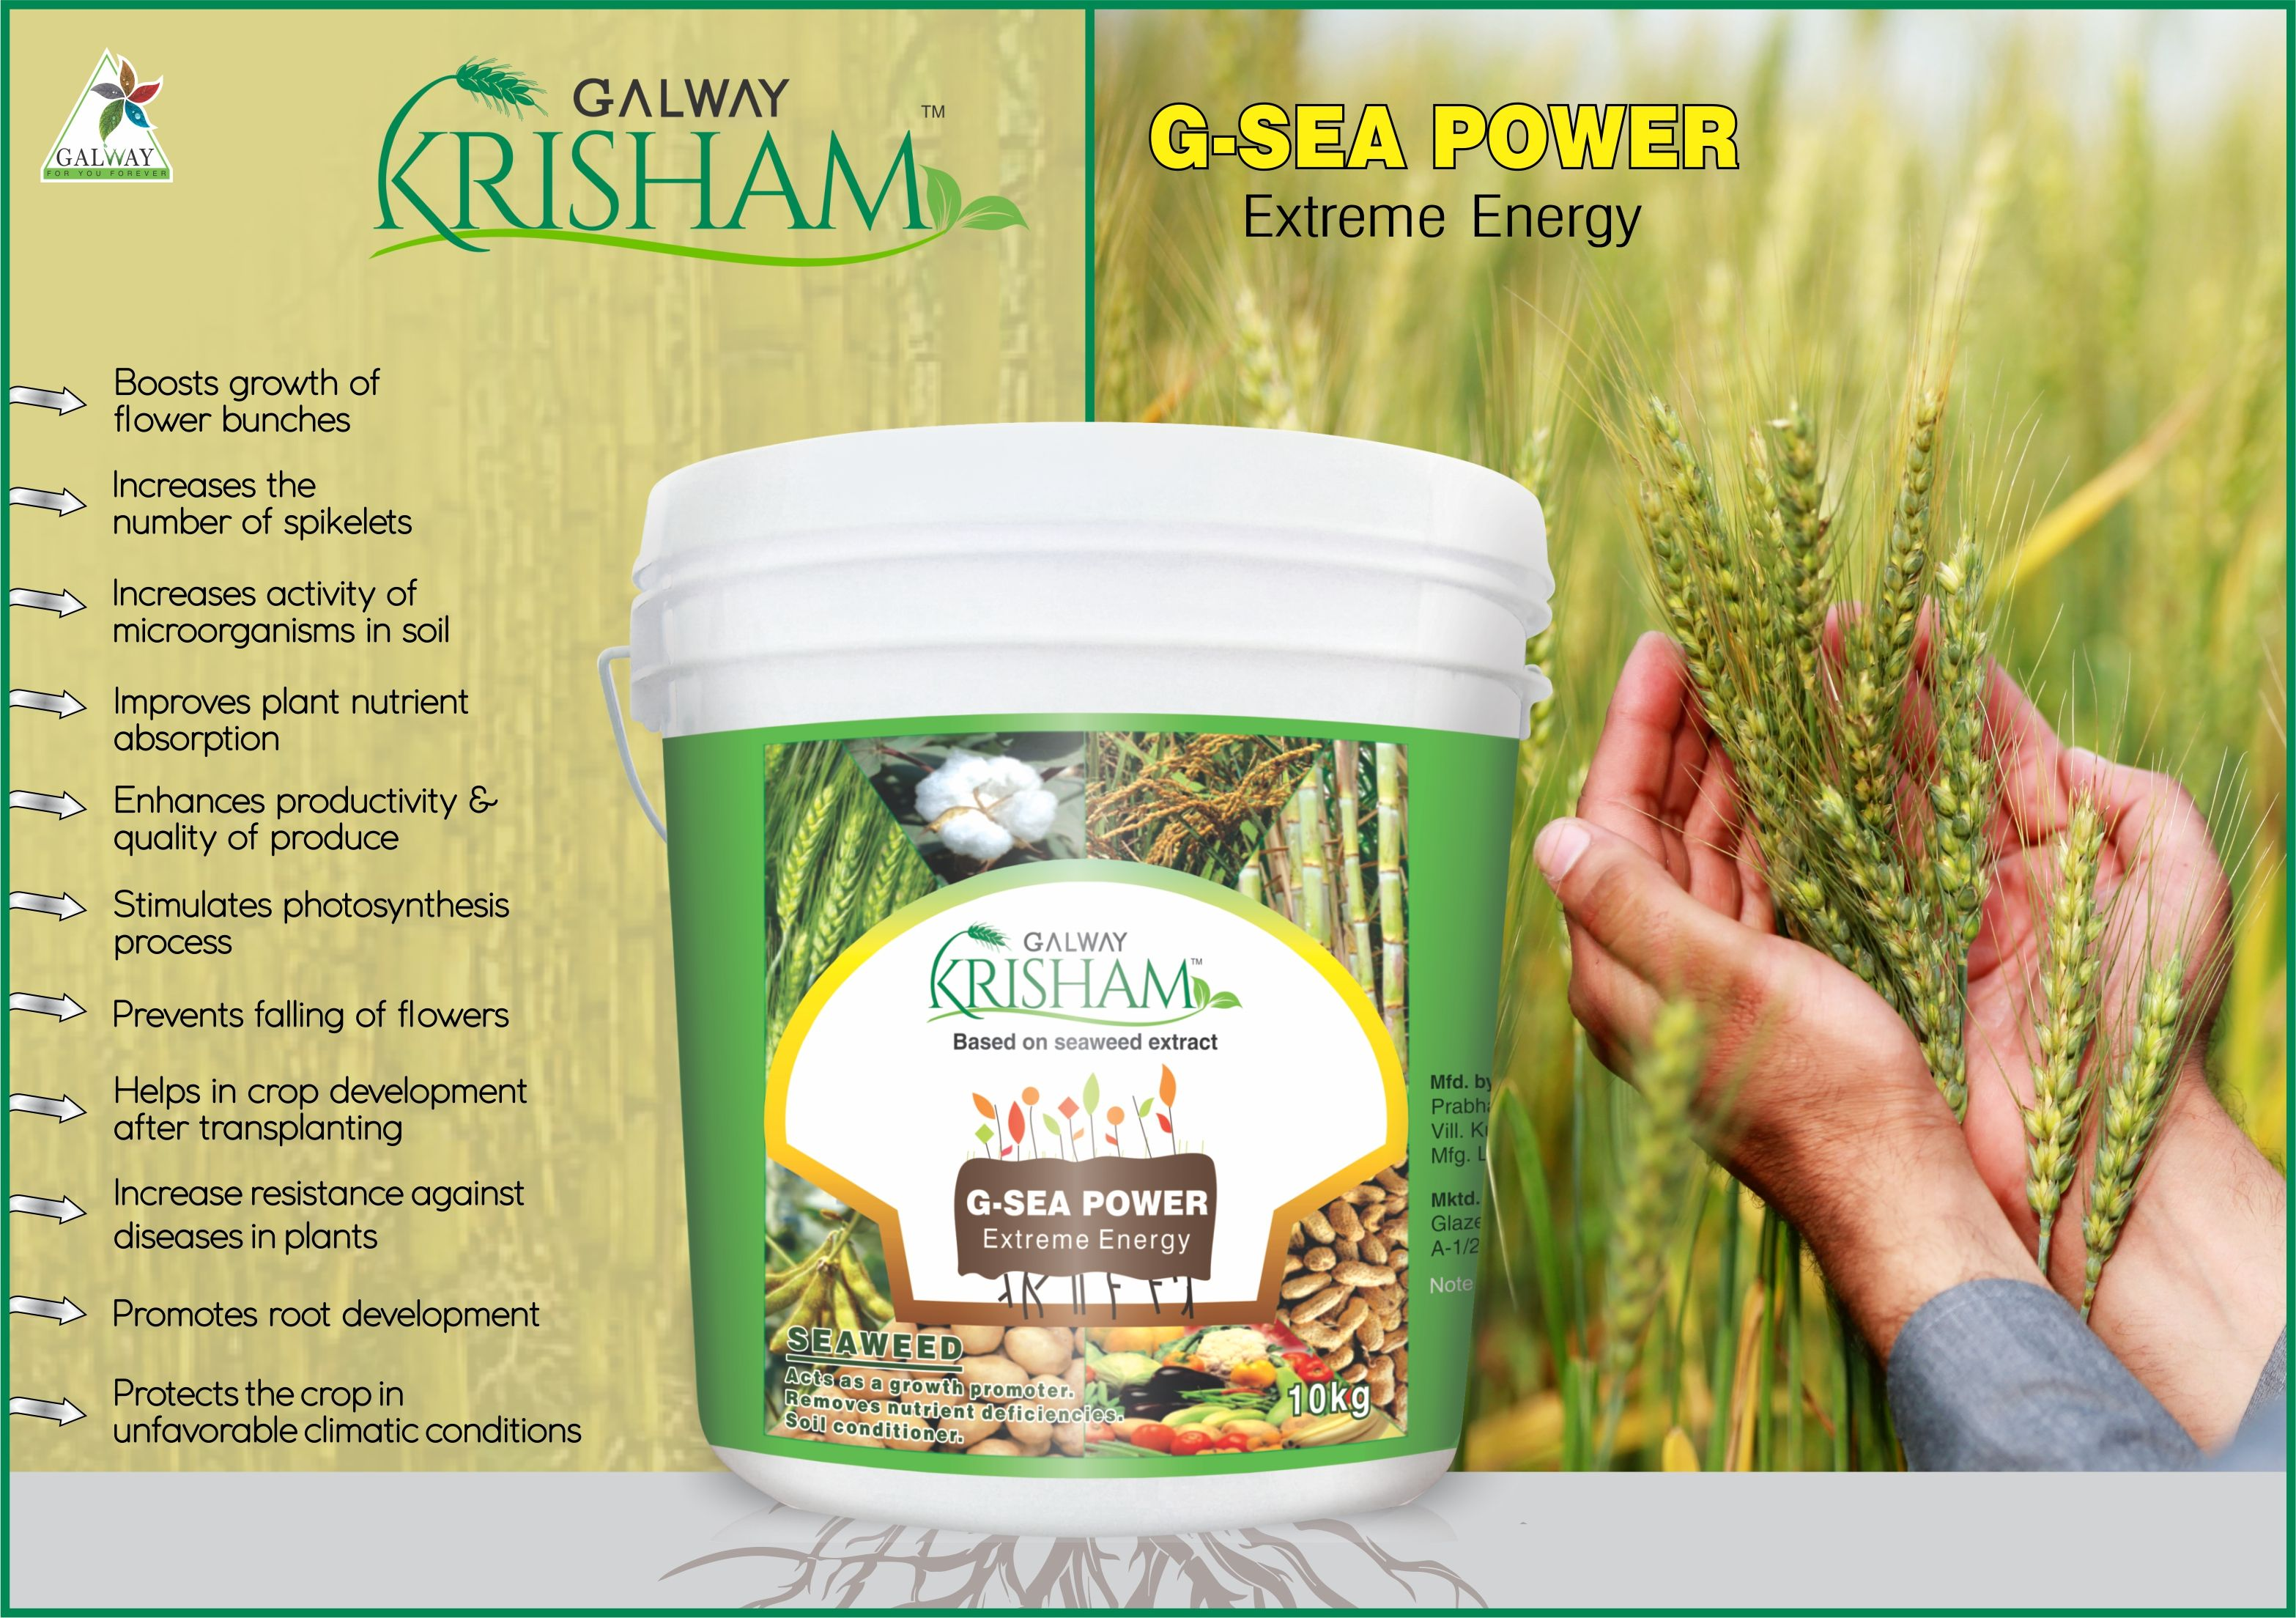 GalwayKrisham GSea Power is flagship product of